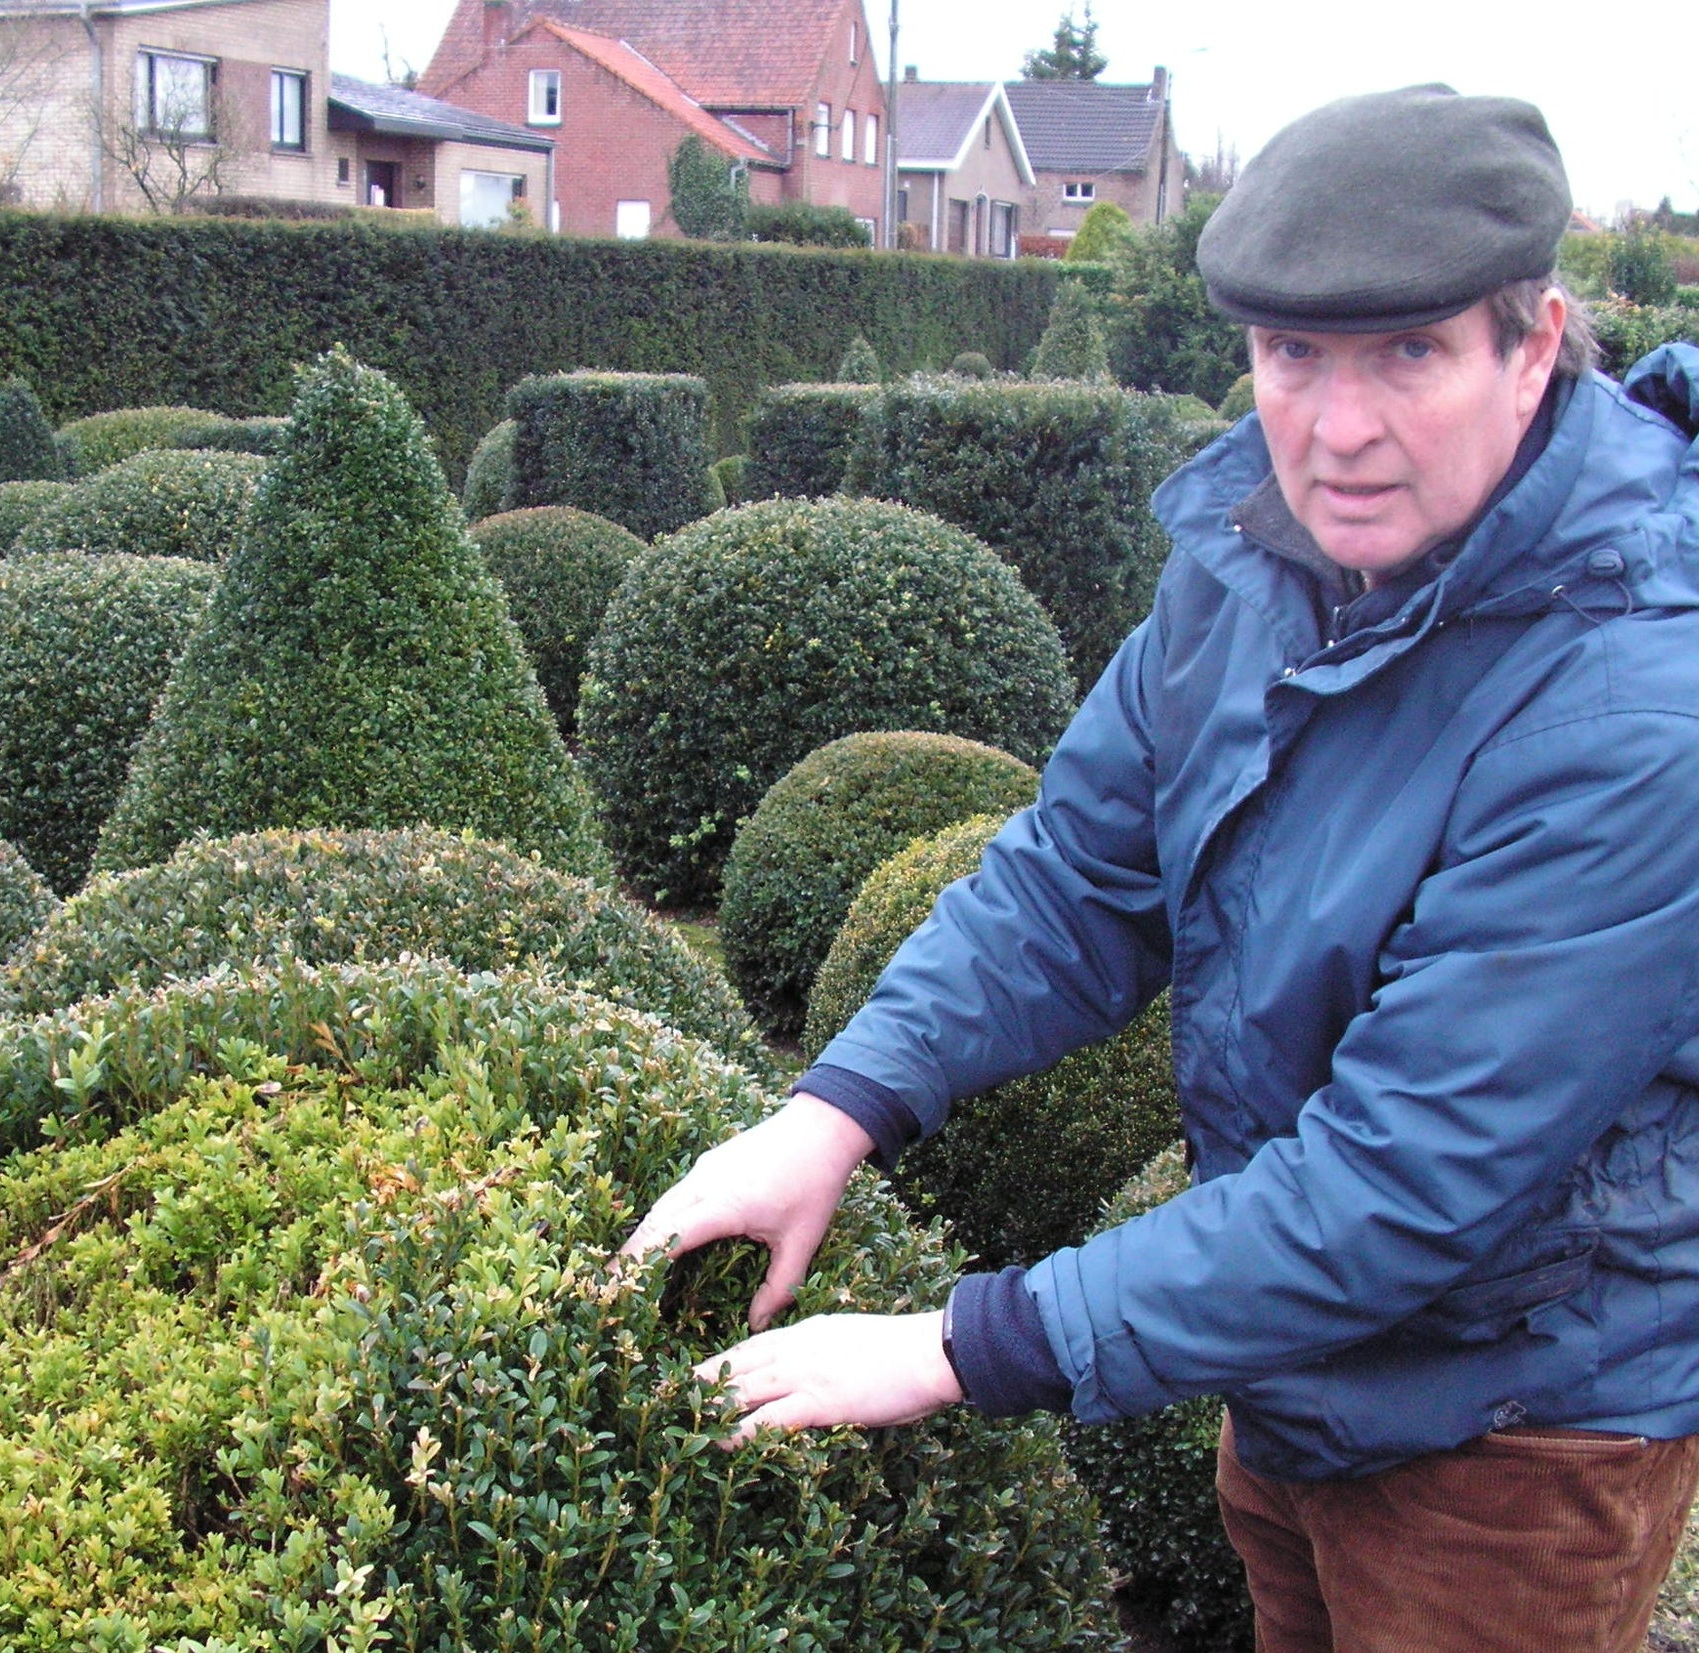 Researcher in Europe showing examples of Boxwood Blight.